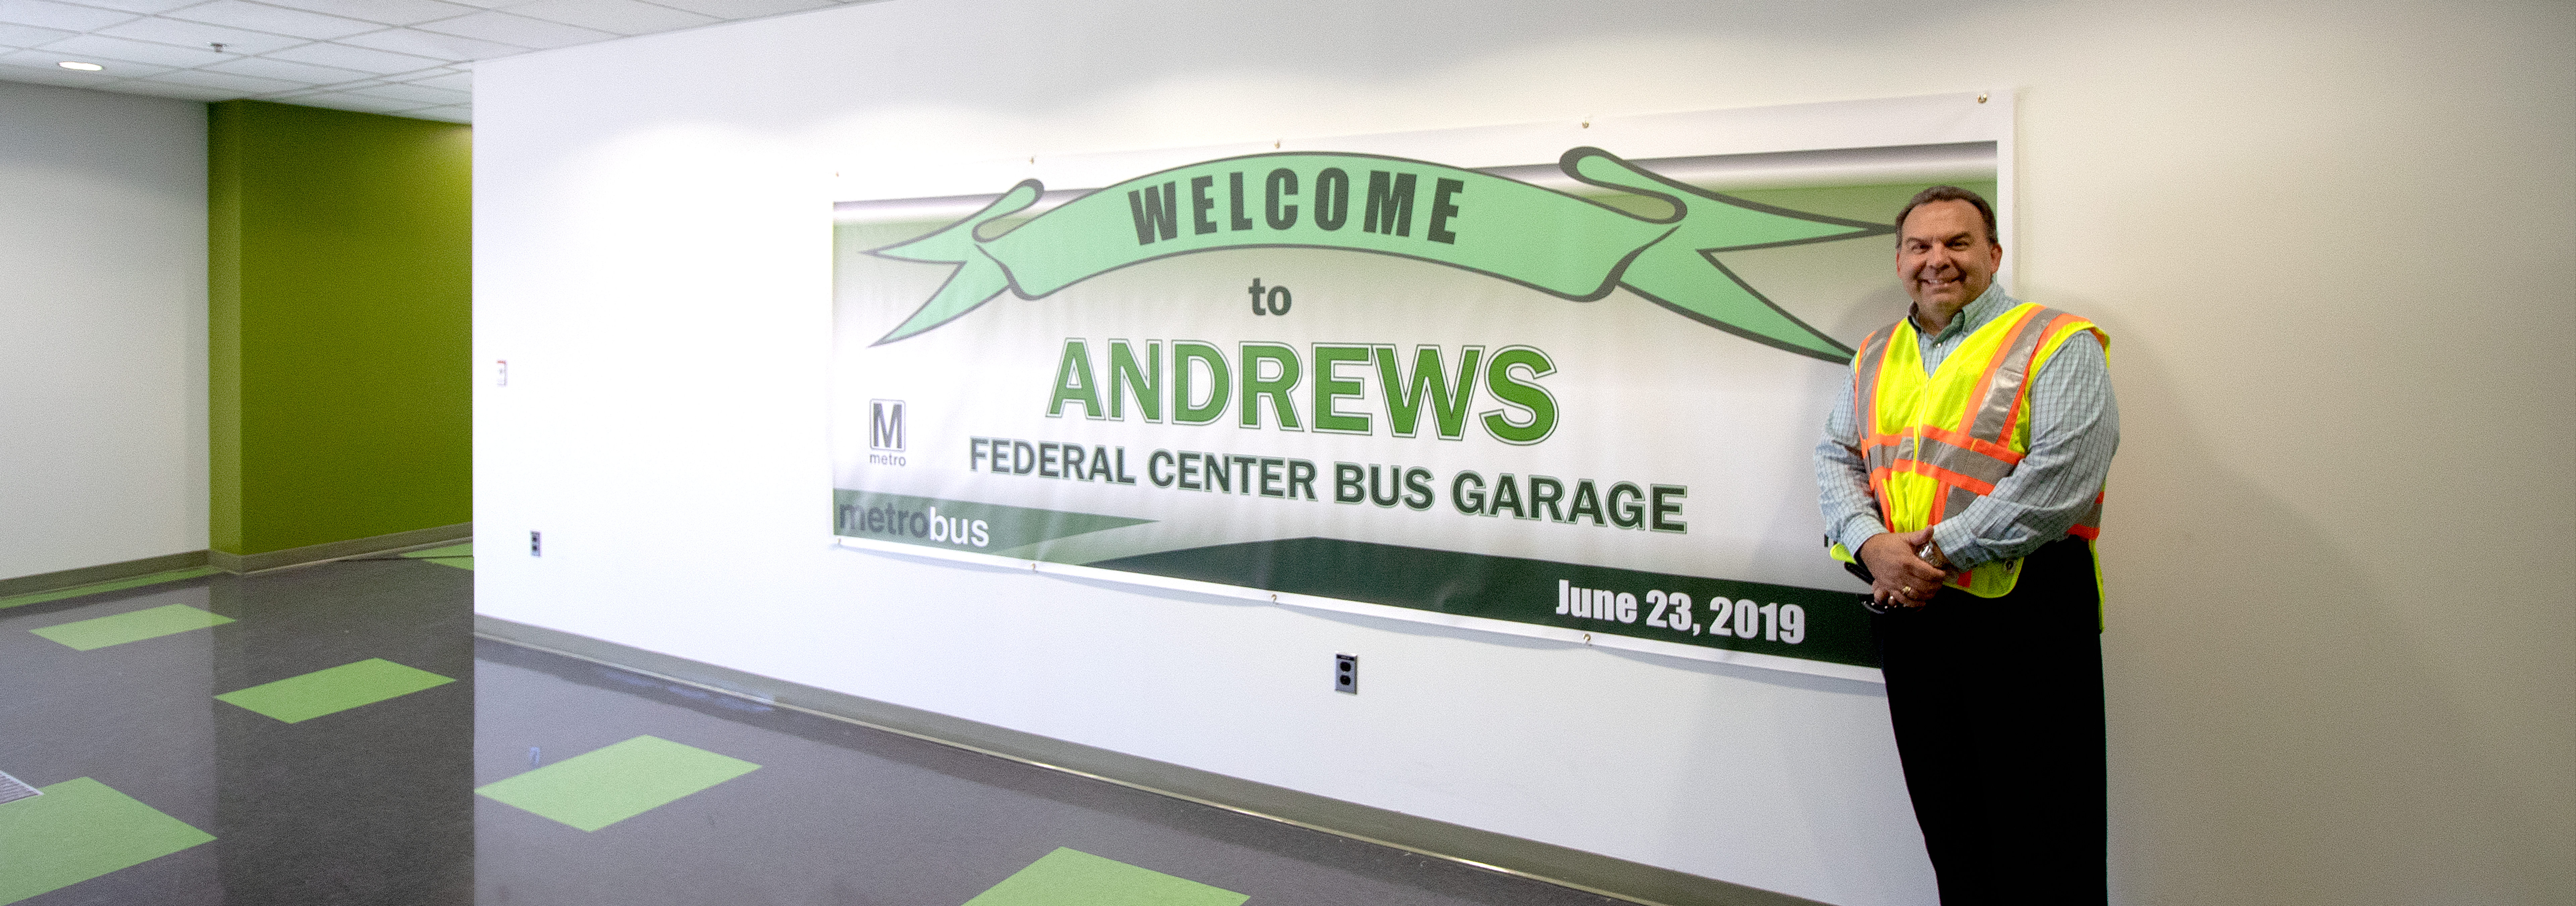 andrews_banner.png